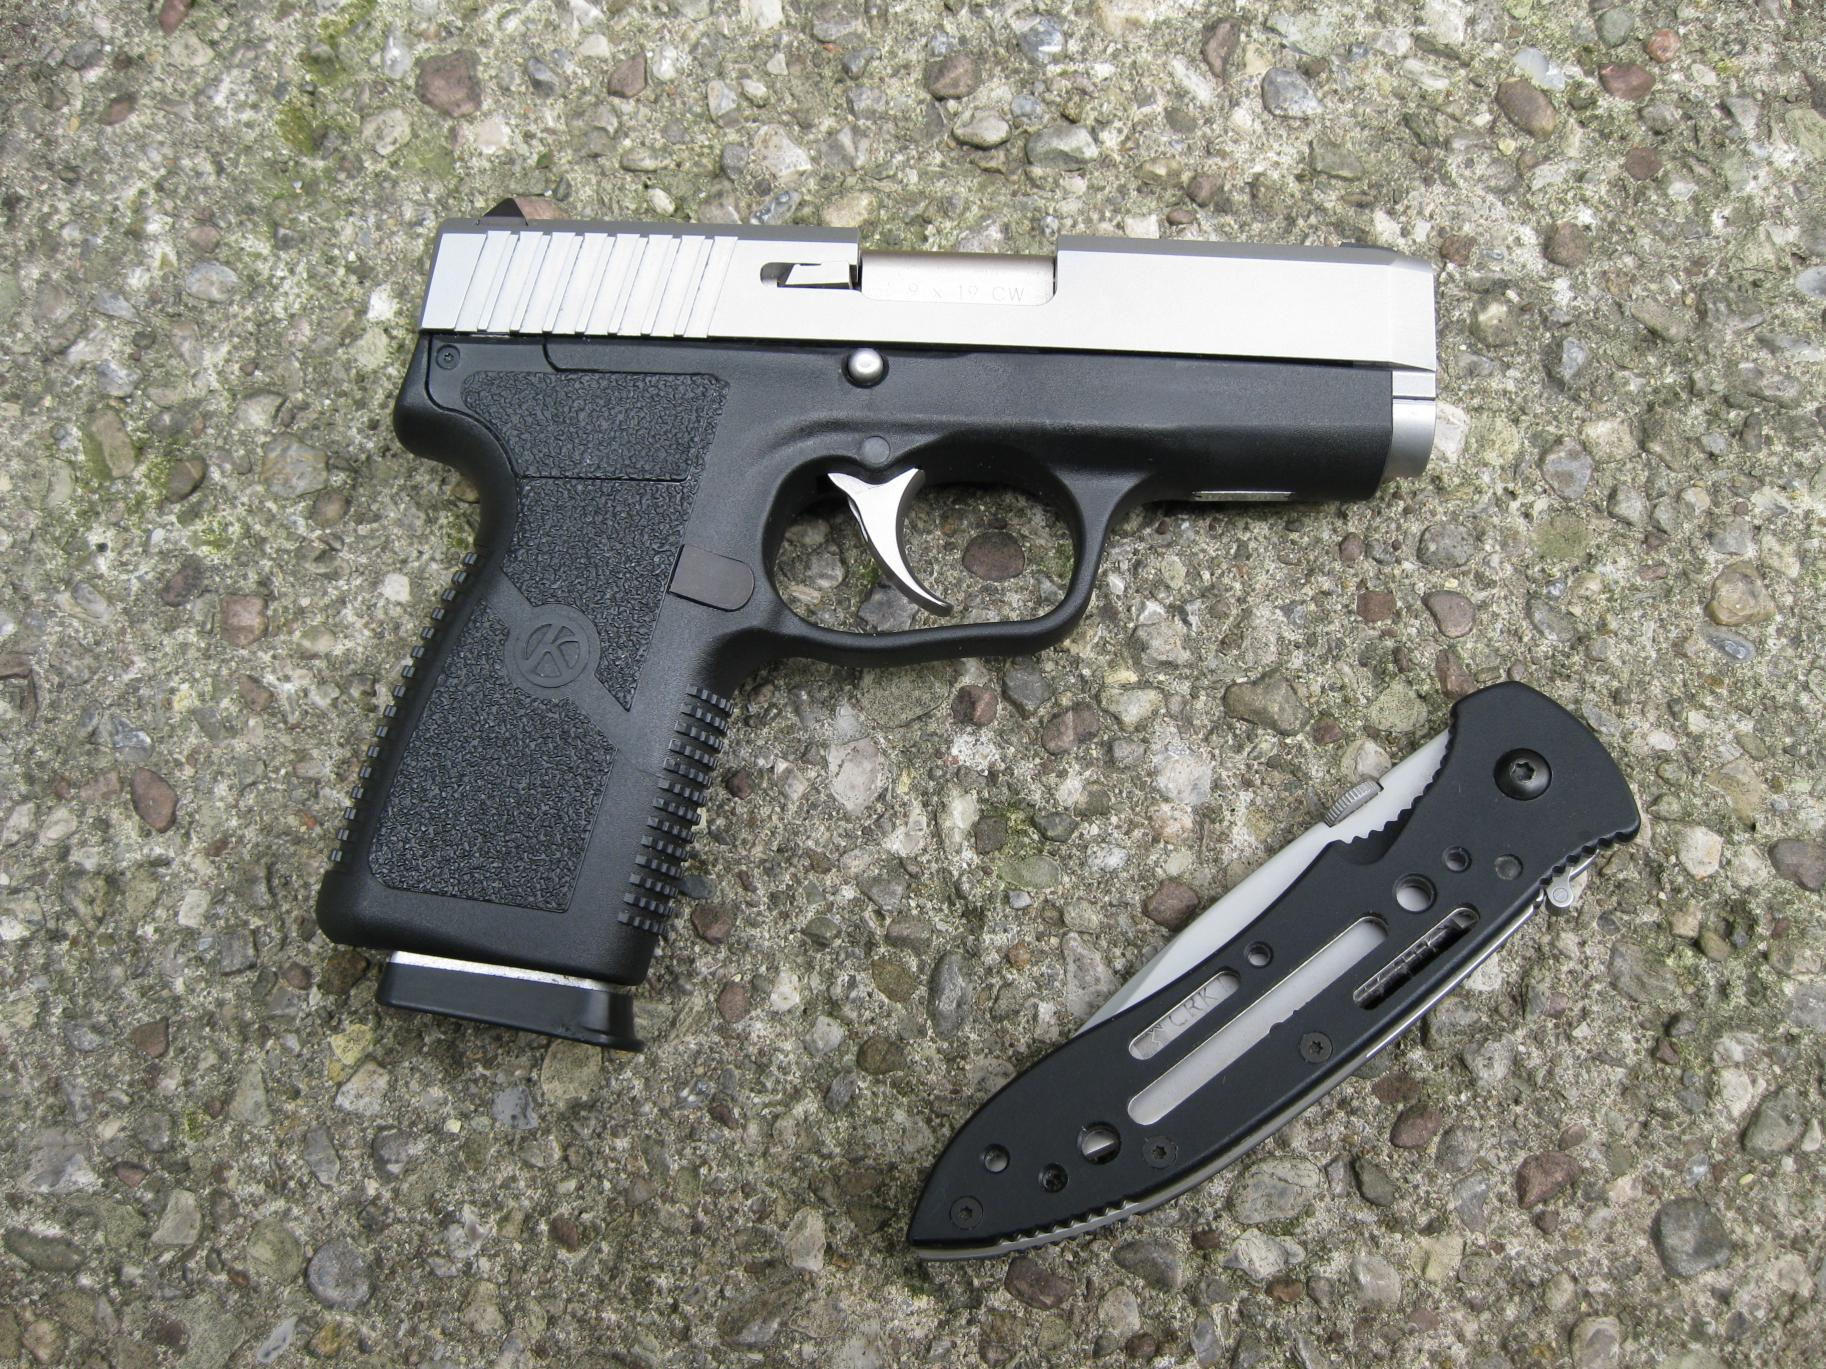 Traded my Glock for a Kahr-img_0424.jpg